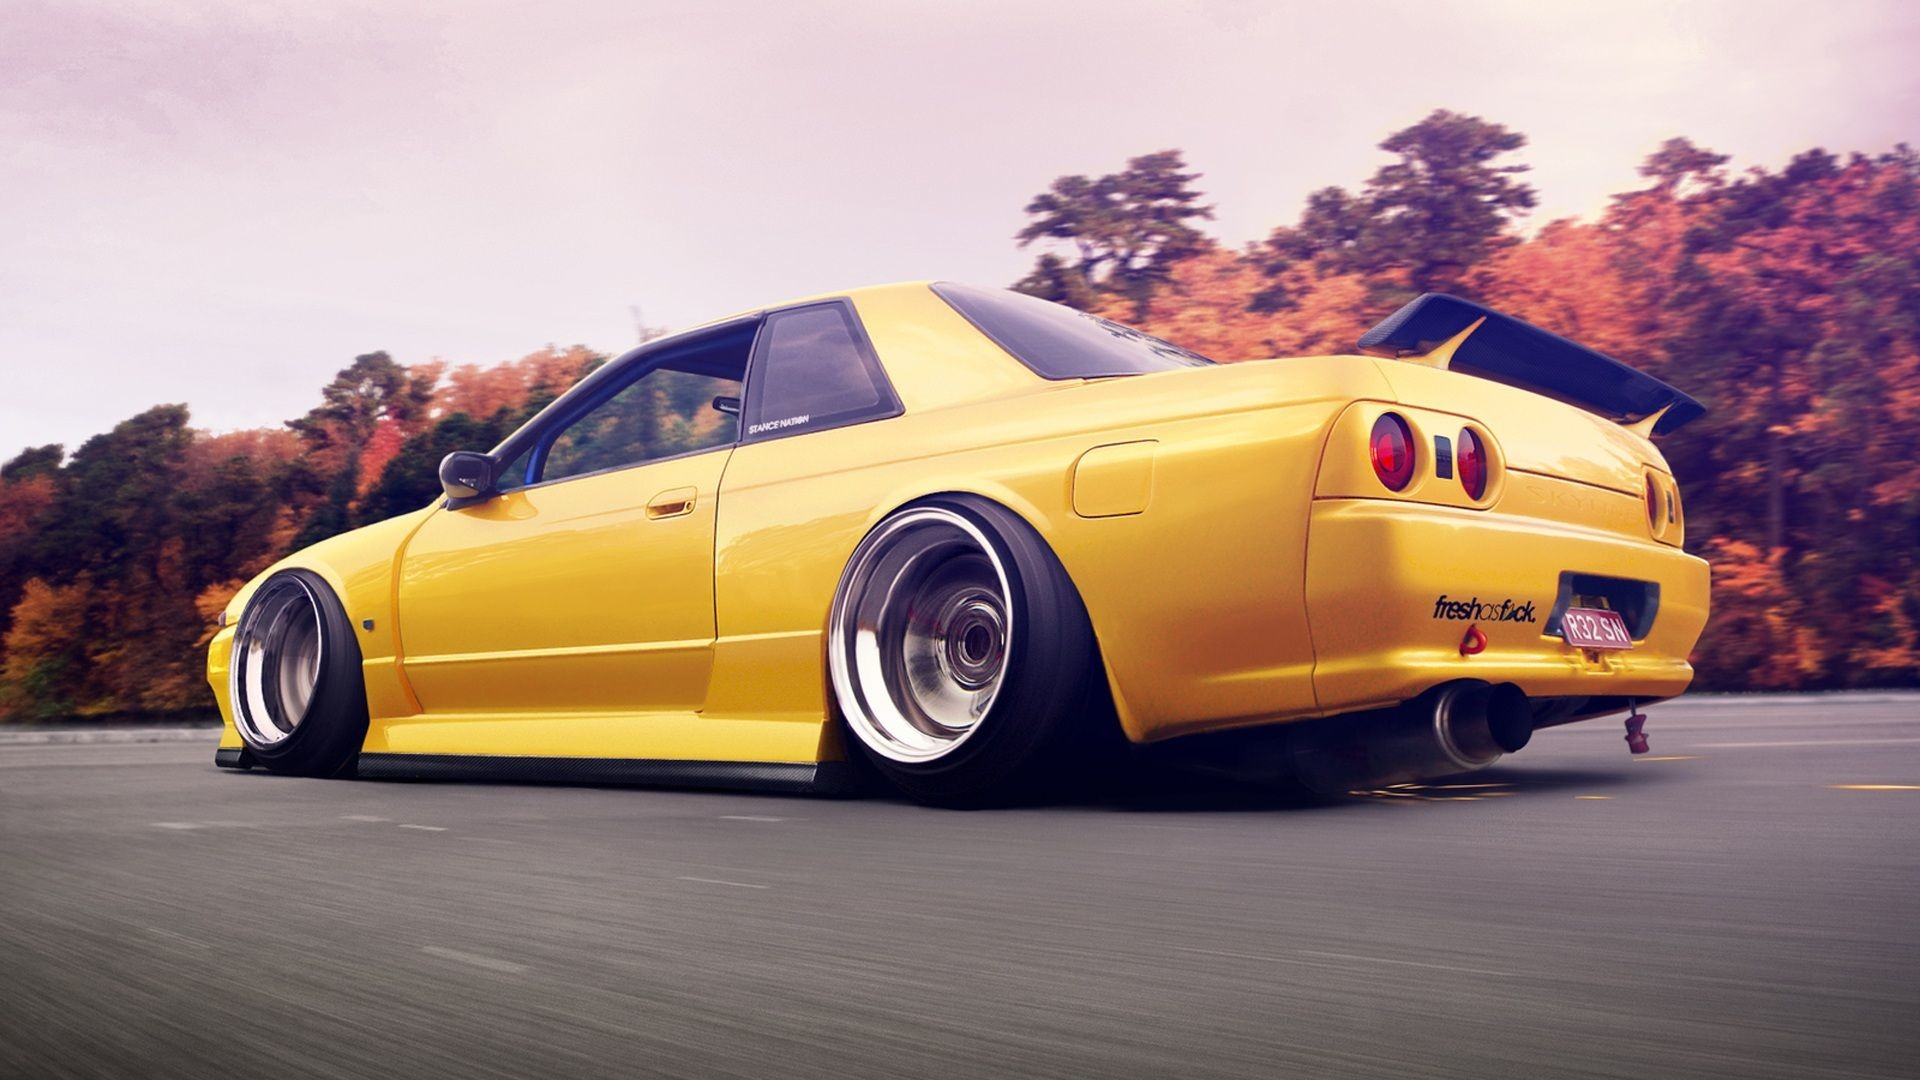 1920x1080 Nissan Skyline Wallpaper Collection For Free Download